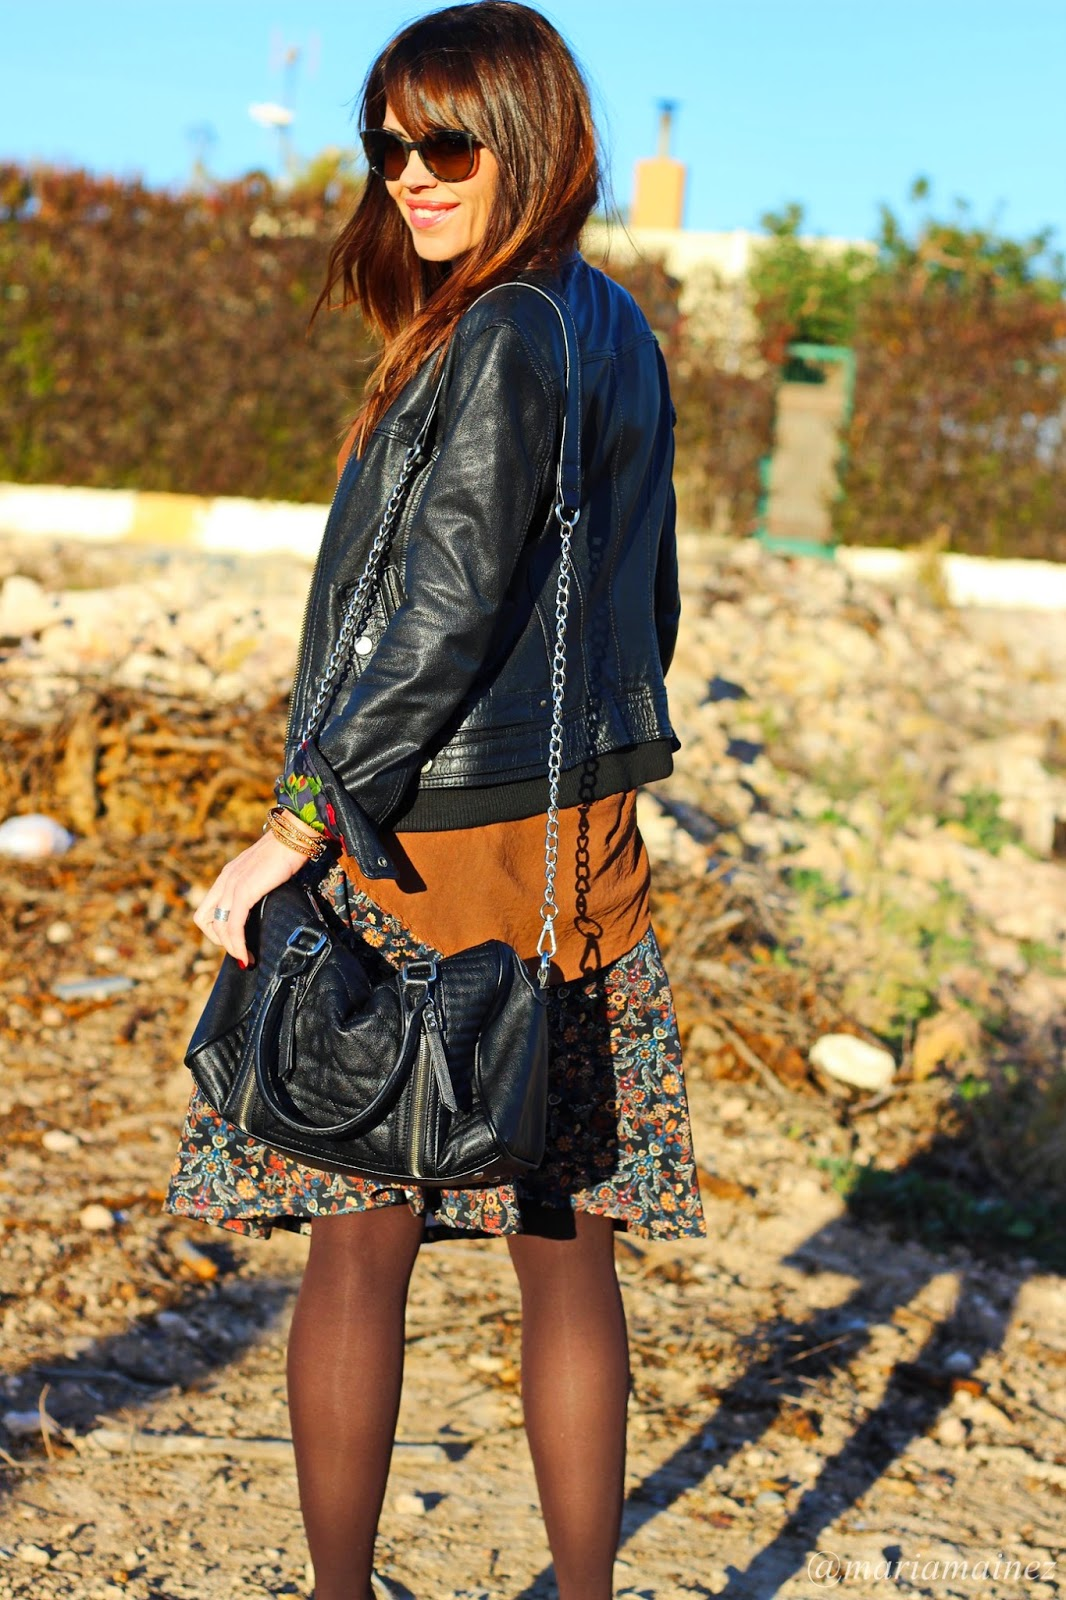 Falda midi - Streetstyle - Fashion blogger - Biker D&G - Chanel Sunnies